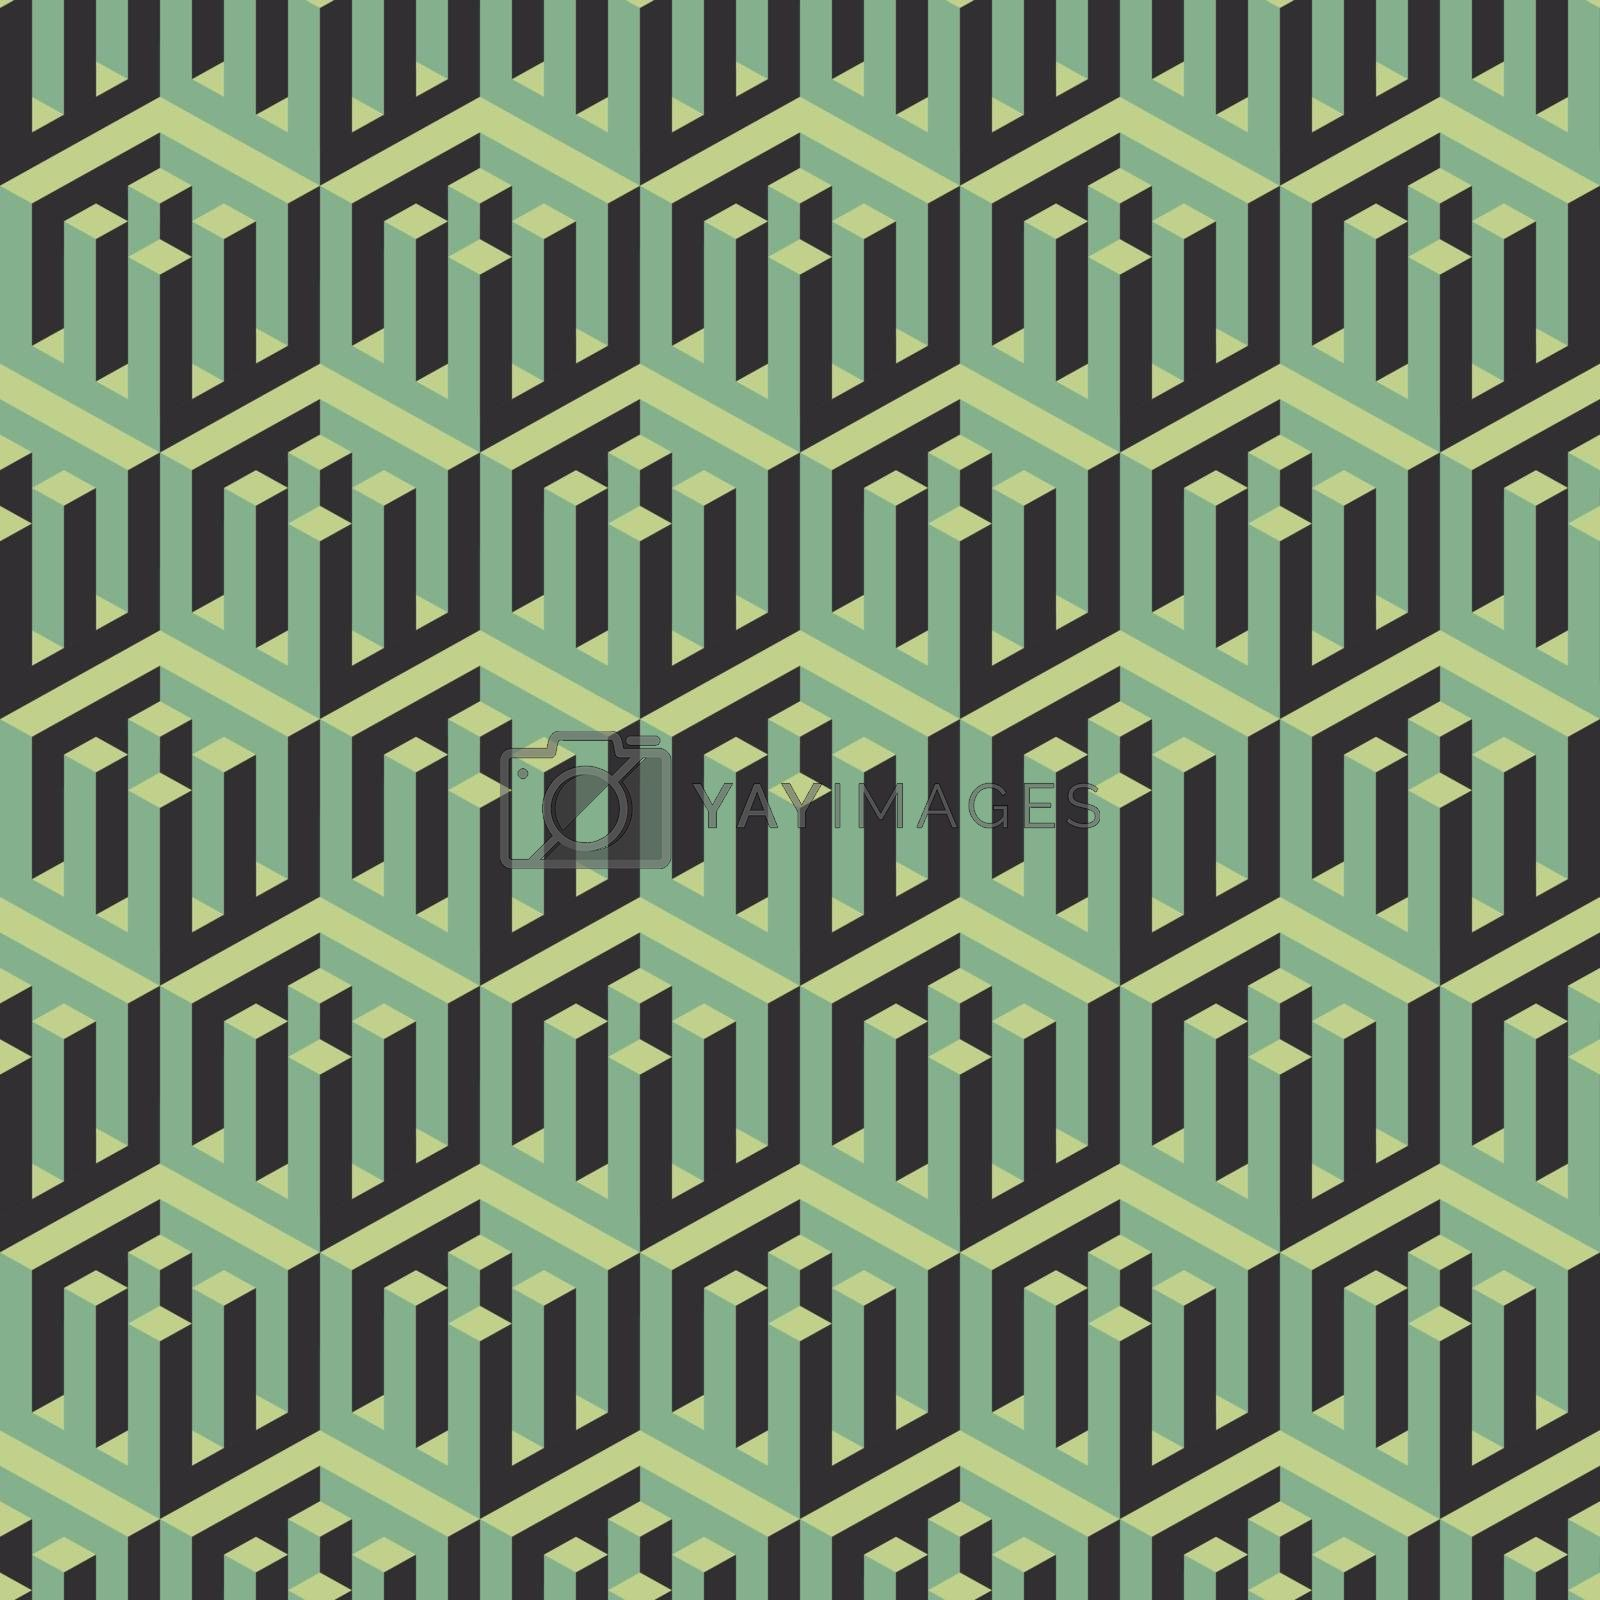 Abstract Geometrical 3d Background. Can Be Used For Wallpaper, Web Page Background.